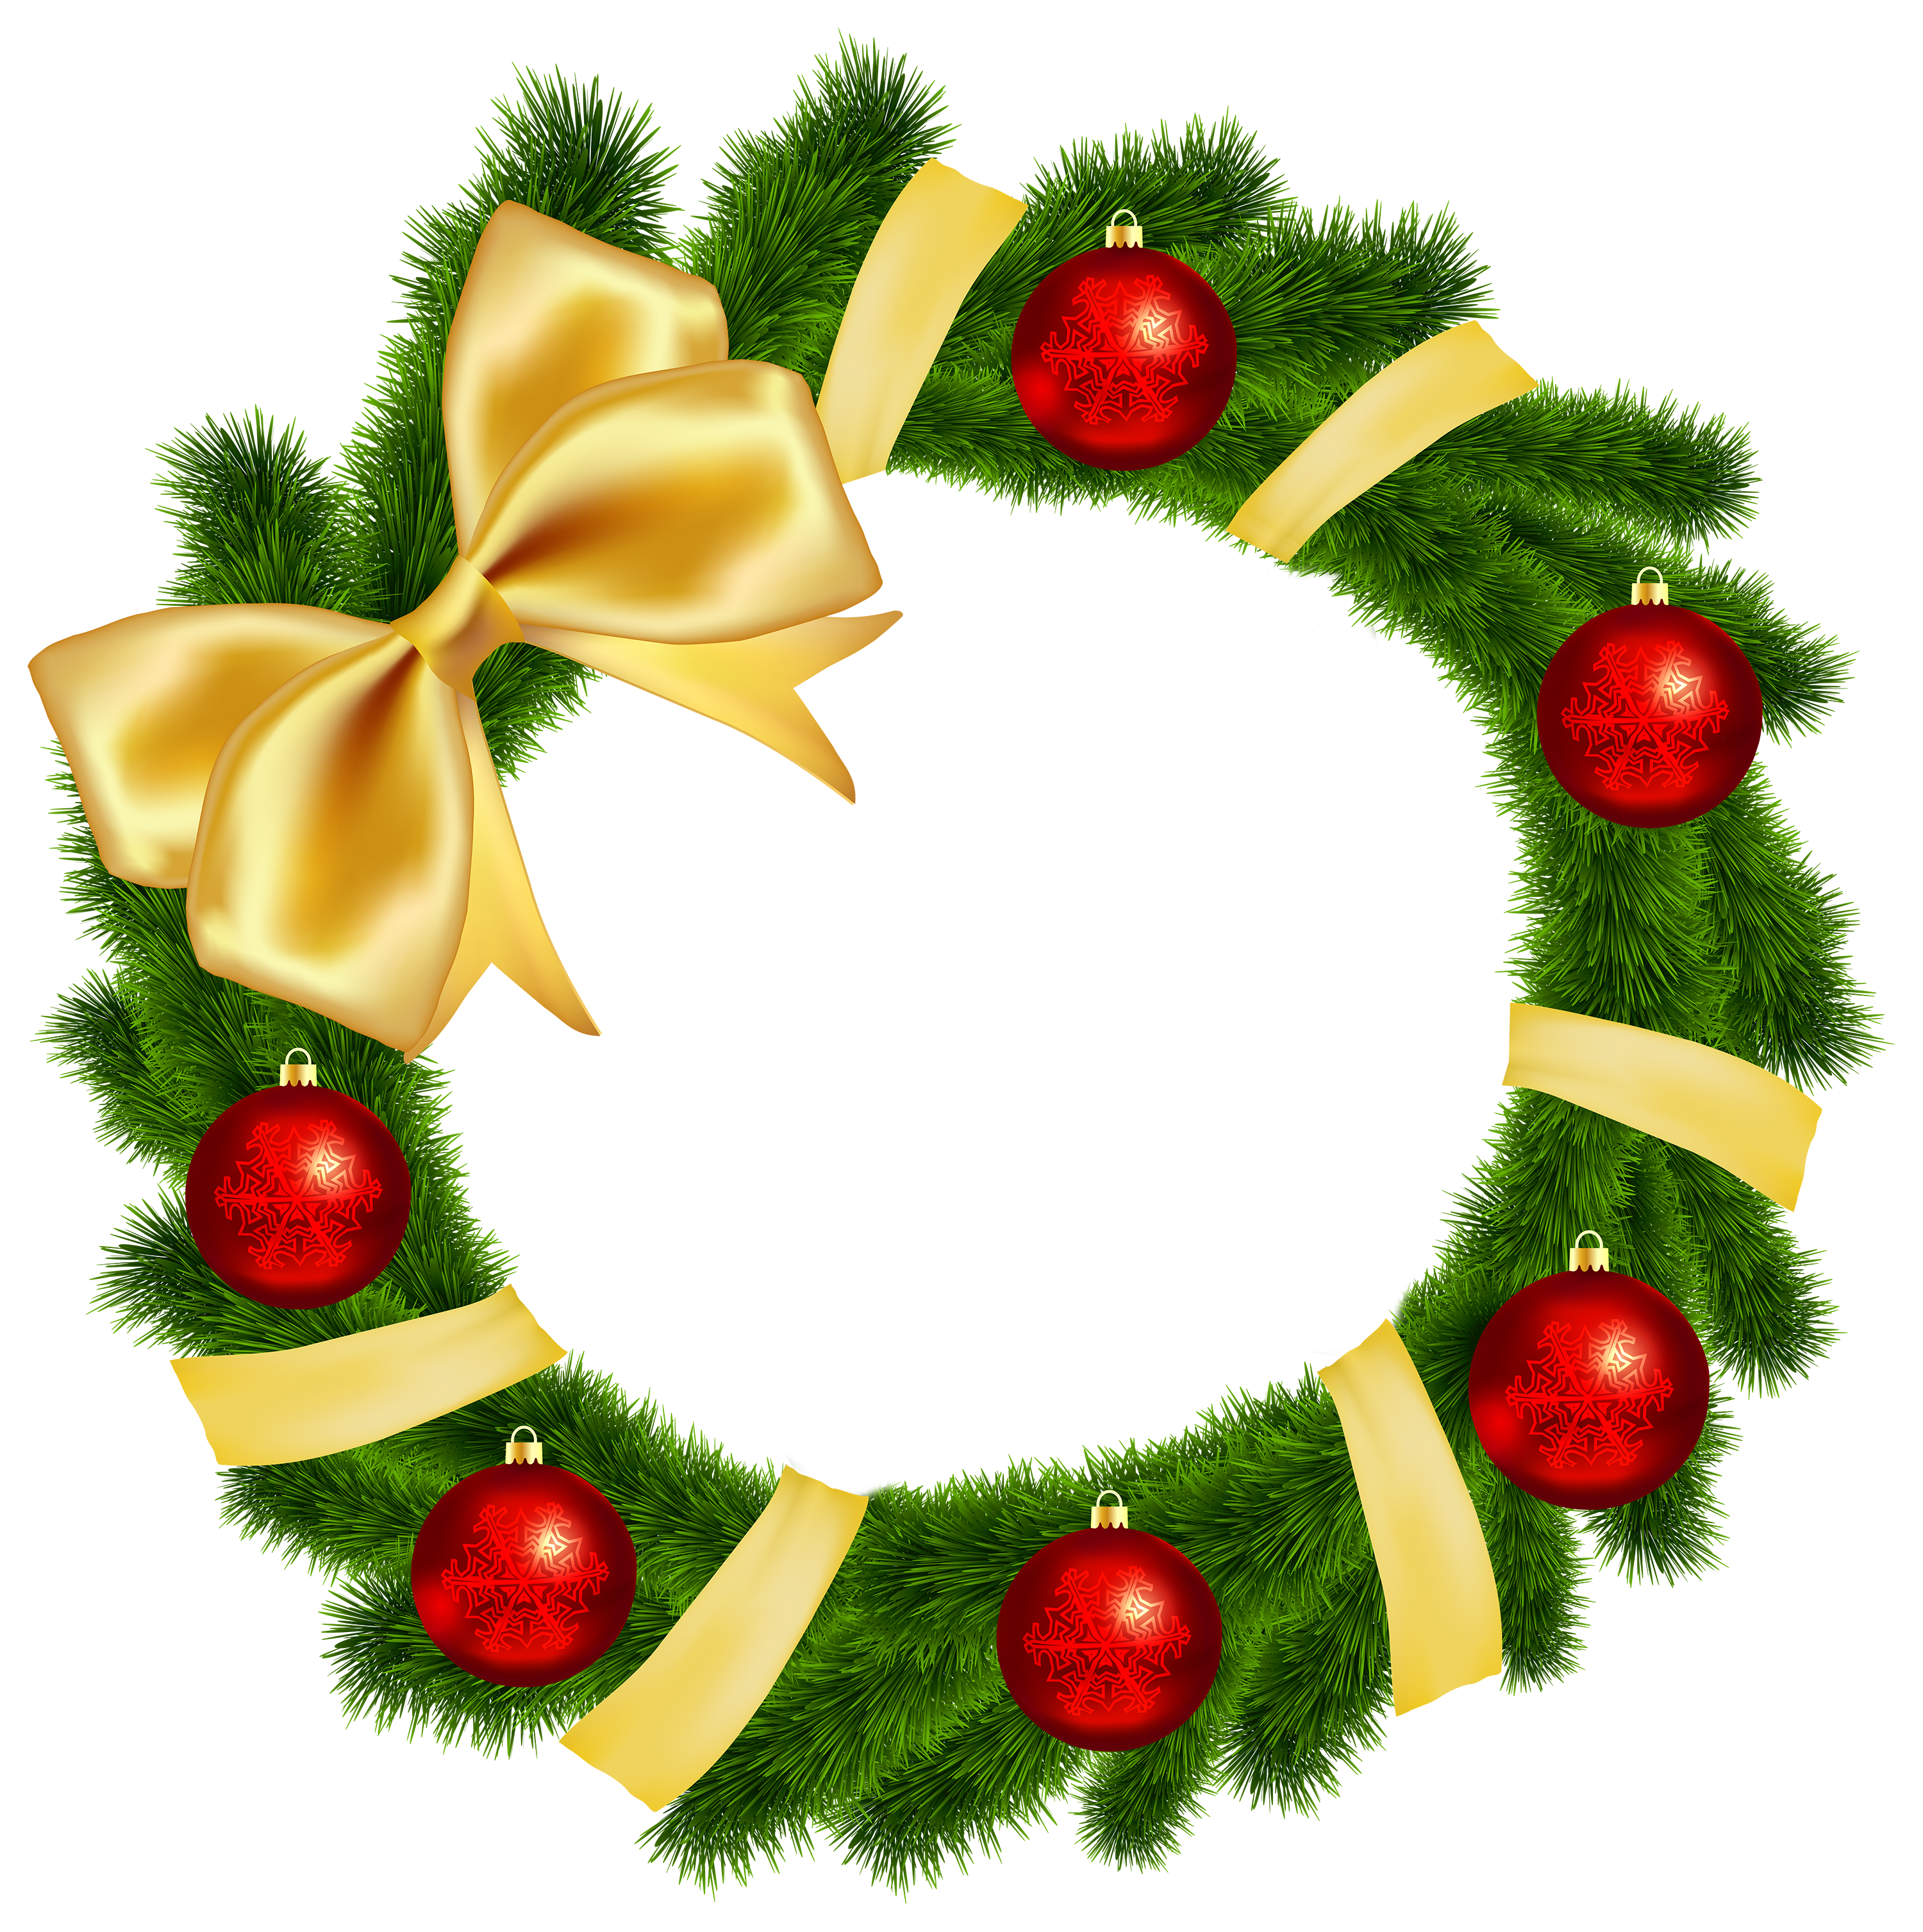 christmas wreath with yellow bow transparent png clip art image rh za pinterest com wreath clip art images wreath clip art black and white